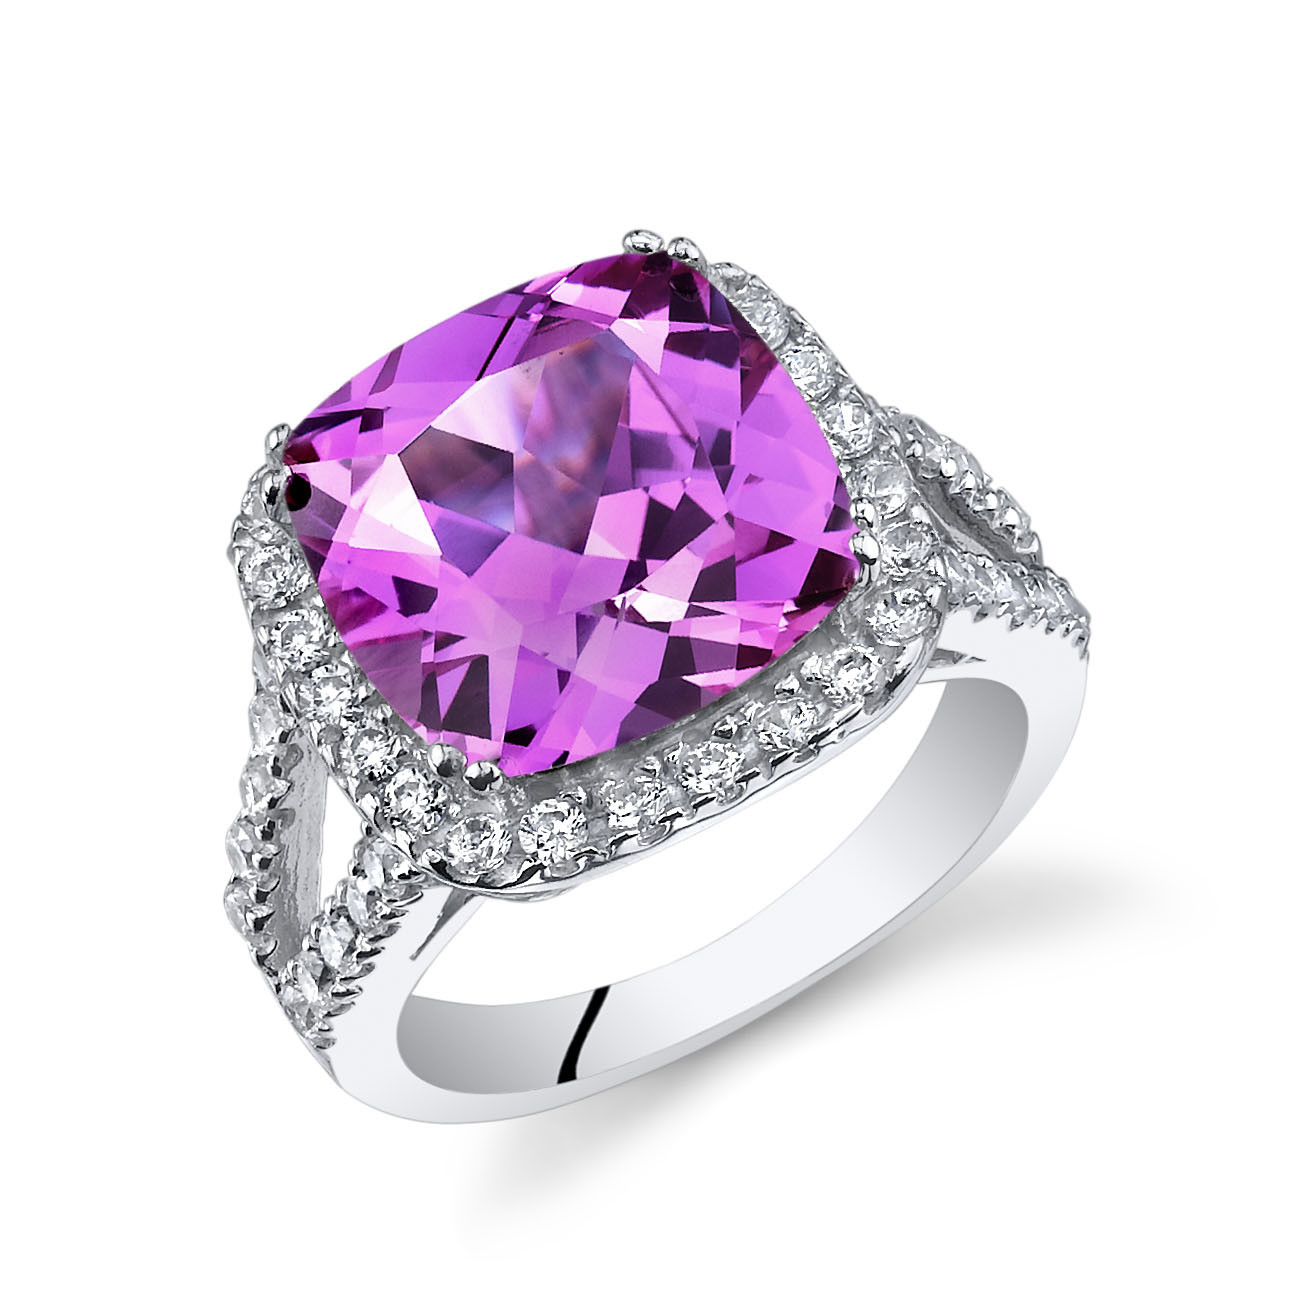 Cushion Cut Pink Sapphire Cz Ring In Sterling Silver